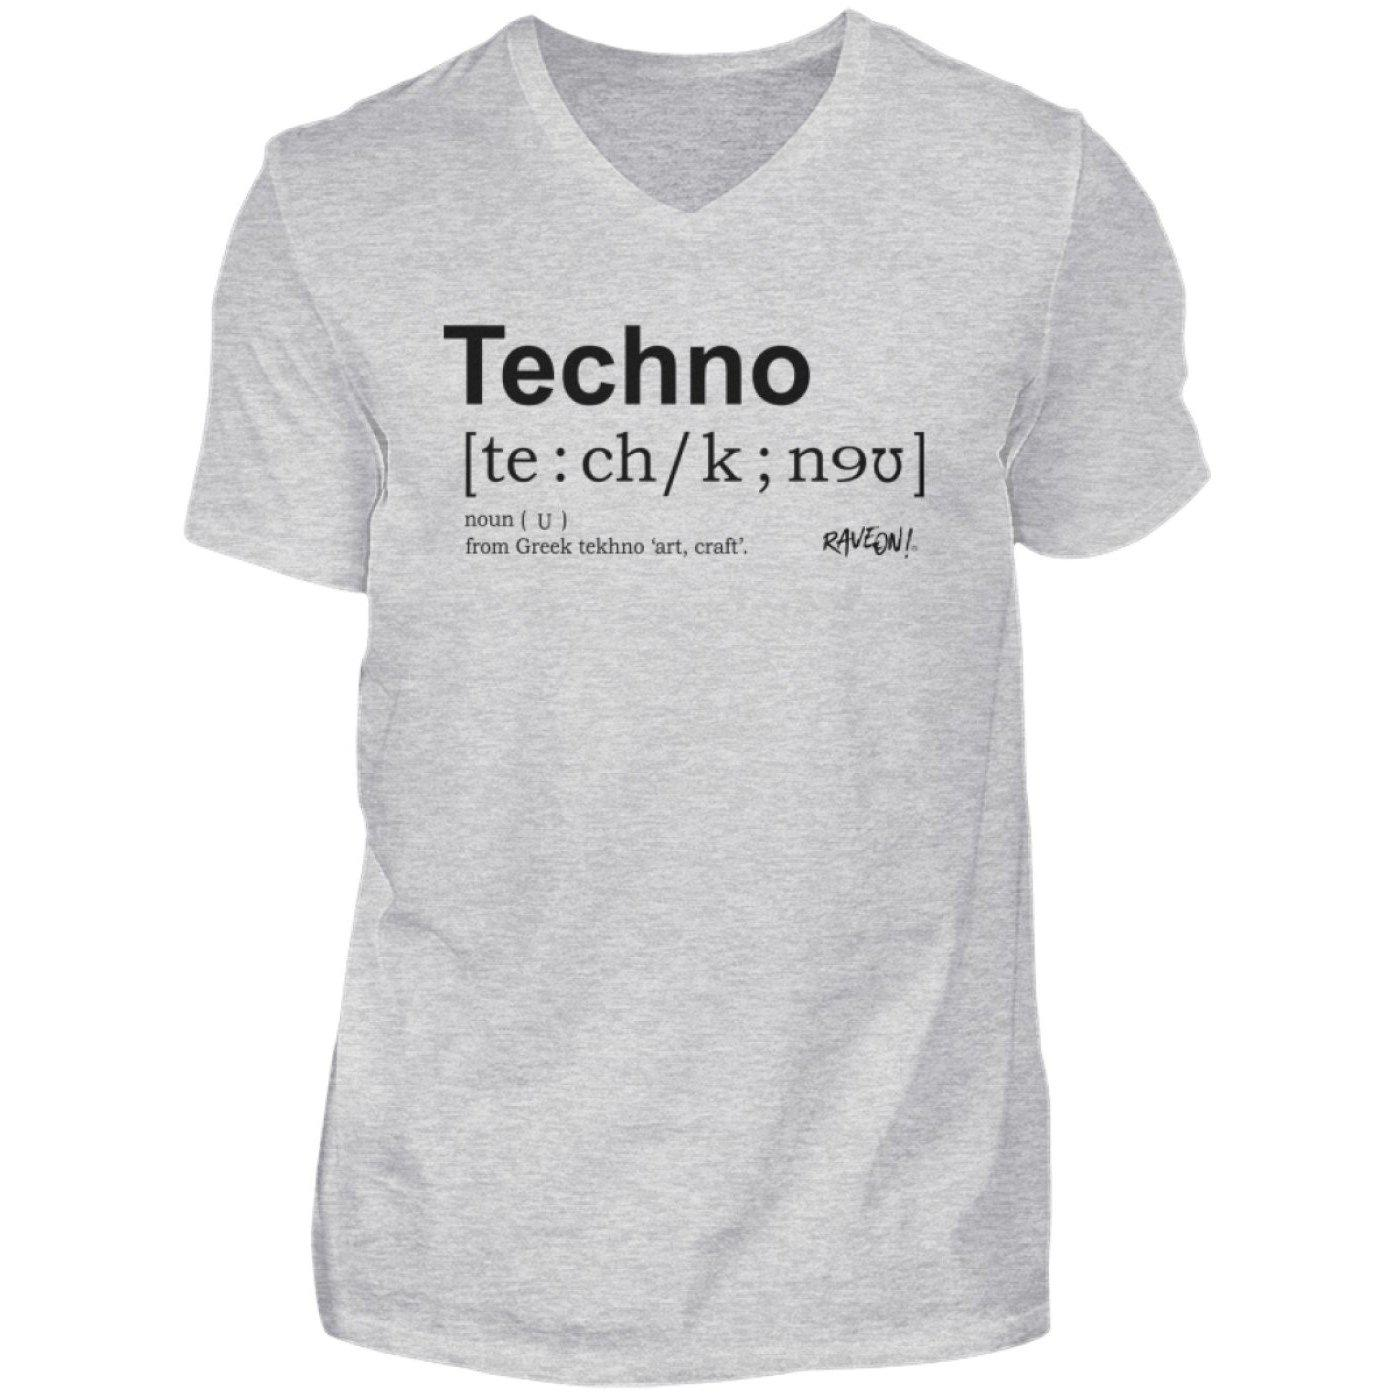 Techno Dictionary - Rave On!® Shirt - Herren V-Neck Shirt V-Neck Herrenshirt Sport Grey (Heather) / S - Rave On!® der Club & Techno Szene Shop für Coole Junge Mode Streetwear Style & Fashion Outfits + Sexy Festival 420 Stuff